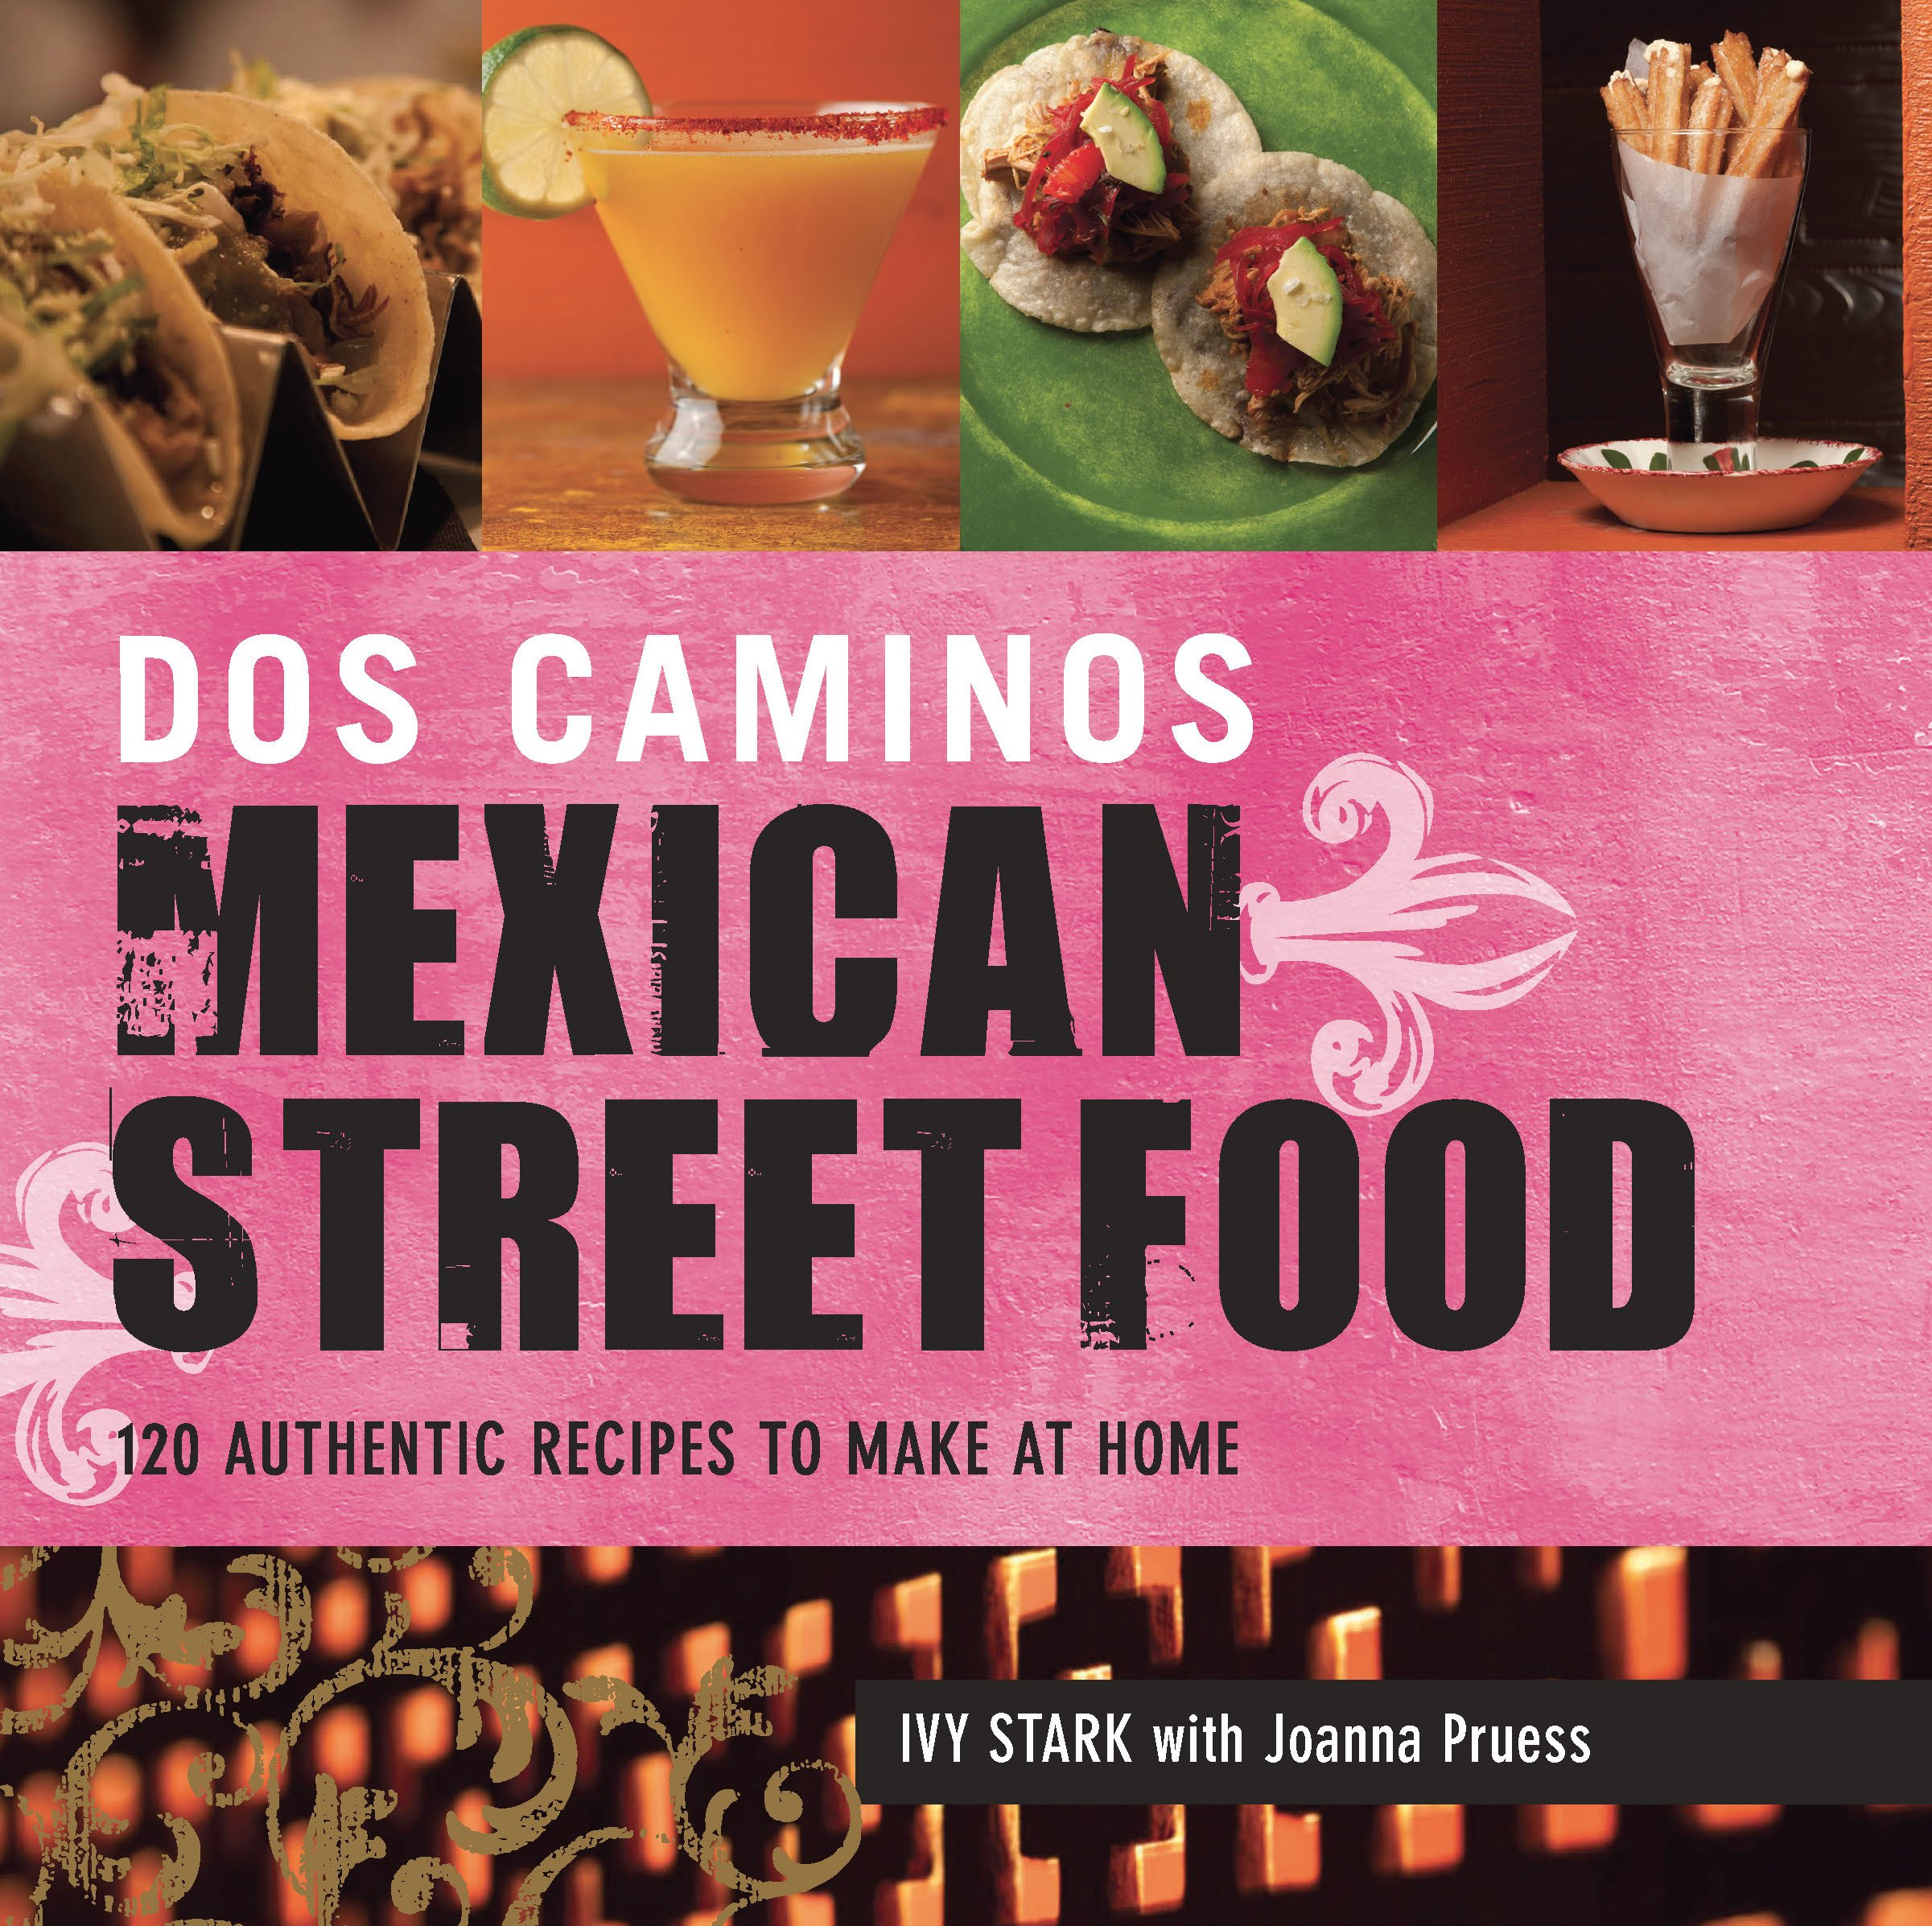 Dos caminos mexican street food 120 authentic recipes to make at dos caminos mexican street food 120 authentic recipes to make at home ivy stark joanna pruess 9781626361249 amazon books forumfinder Choice Image